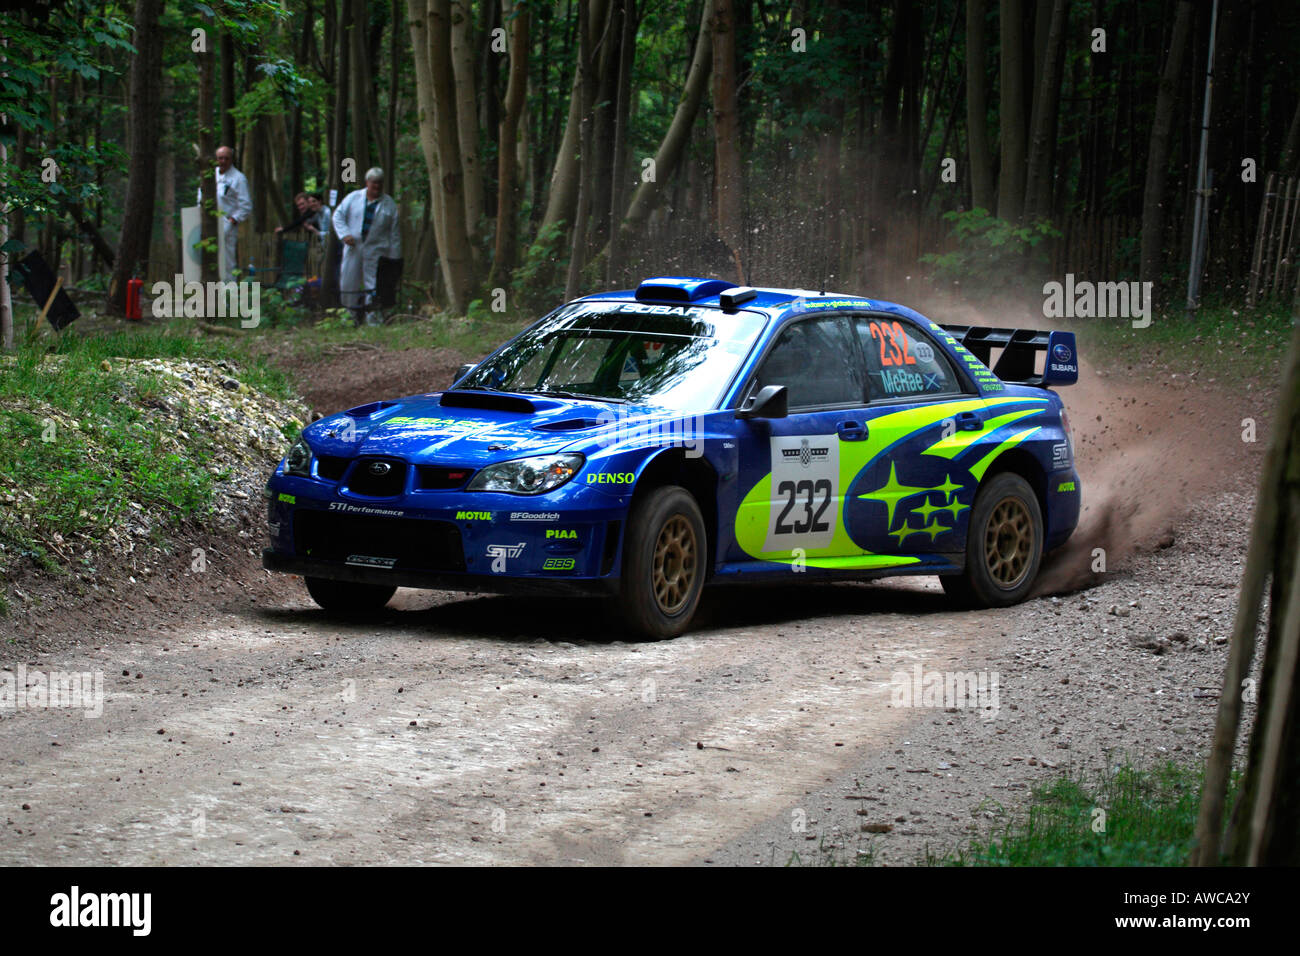 Colin McRae Subaru Impreza Rally Car Cornering Goodwood Festival Of